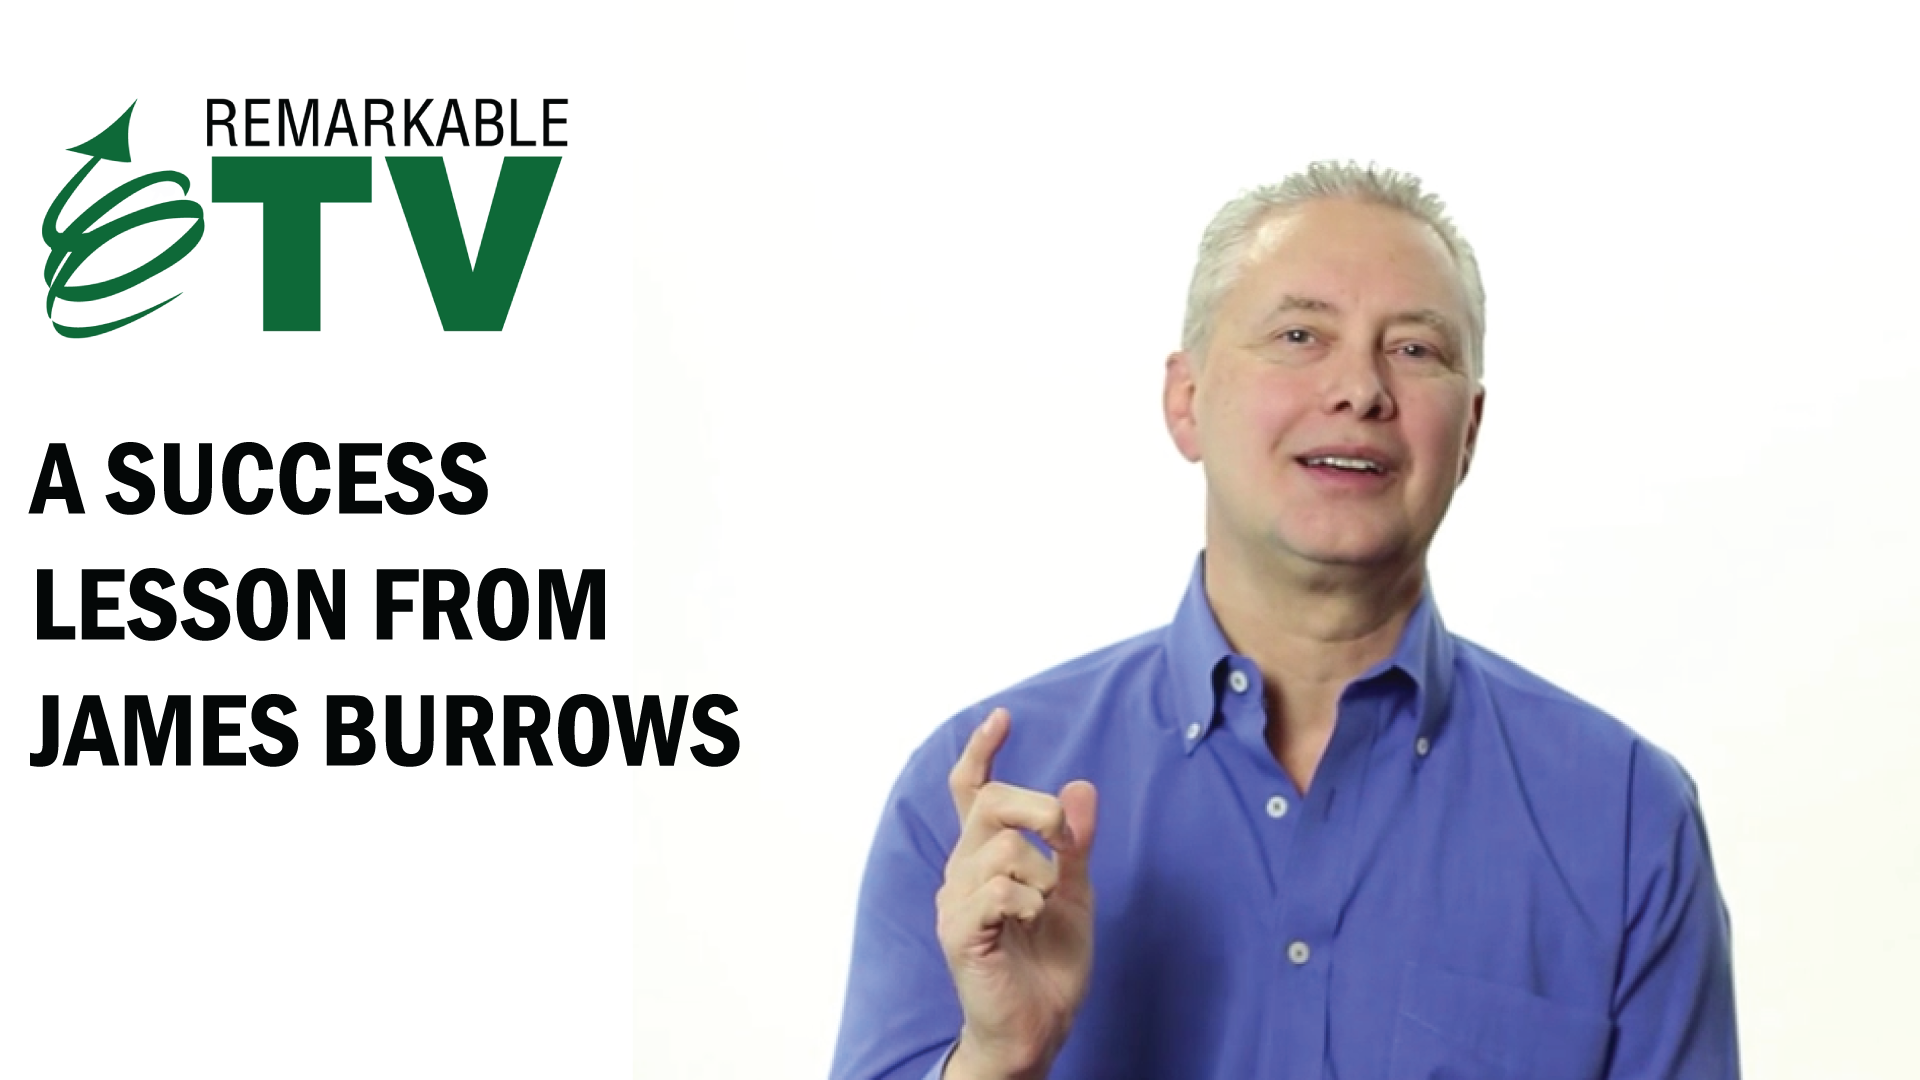 Success Lesson from James Burrows - Kevin Eikenberry on Remarkable TV